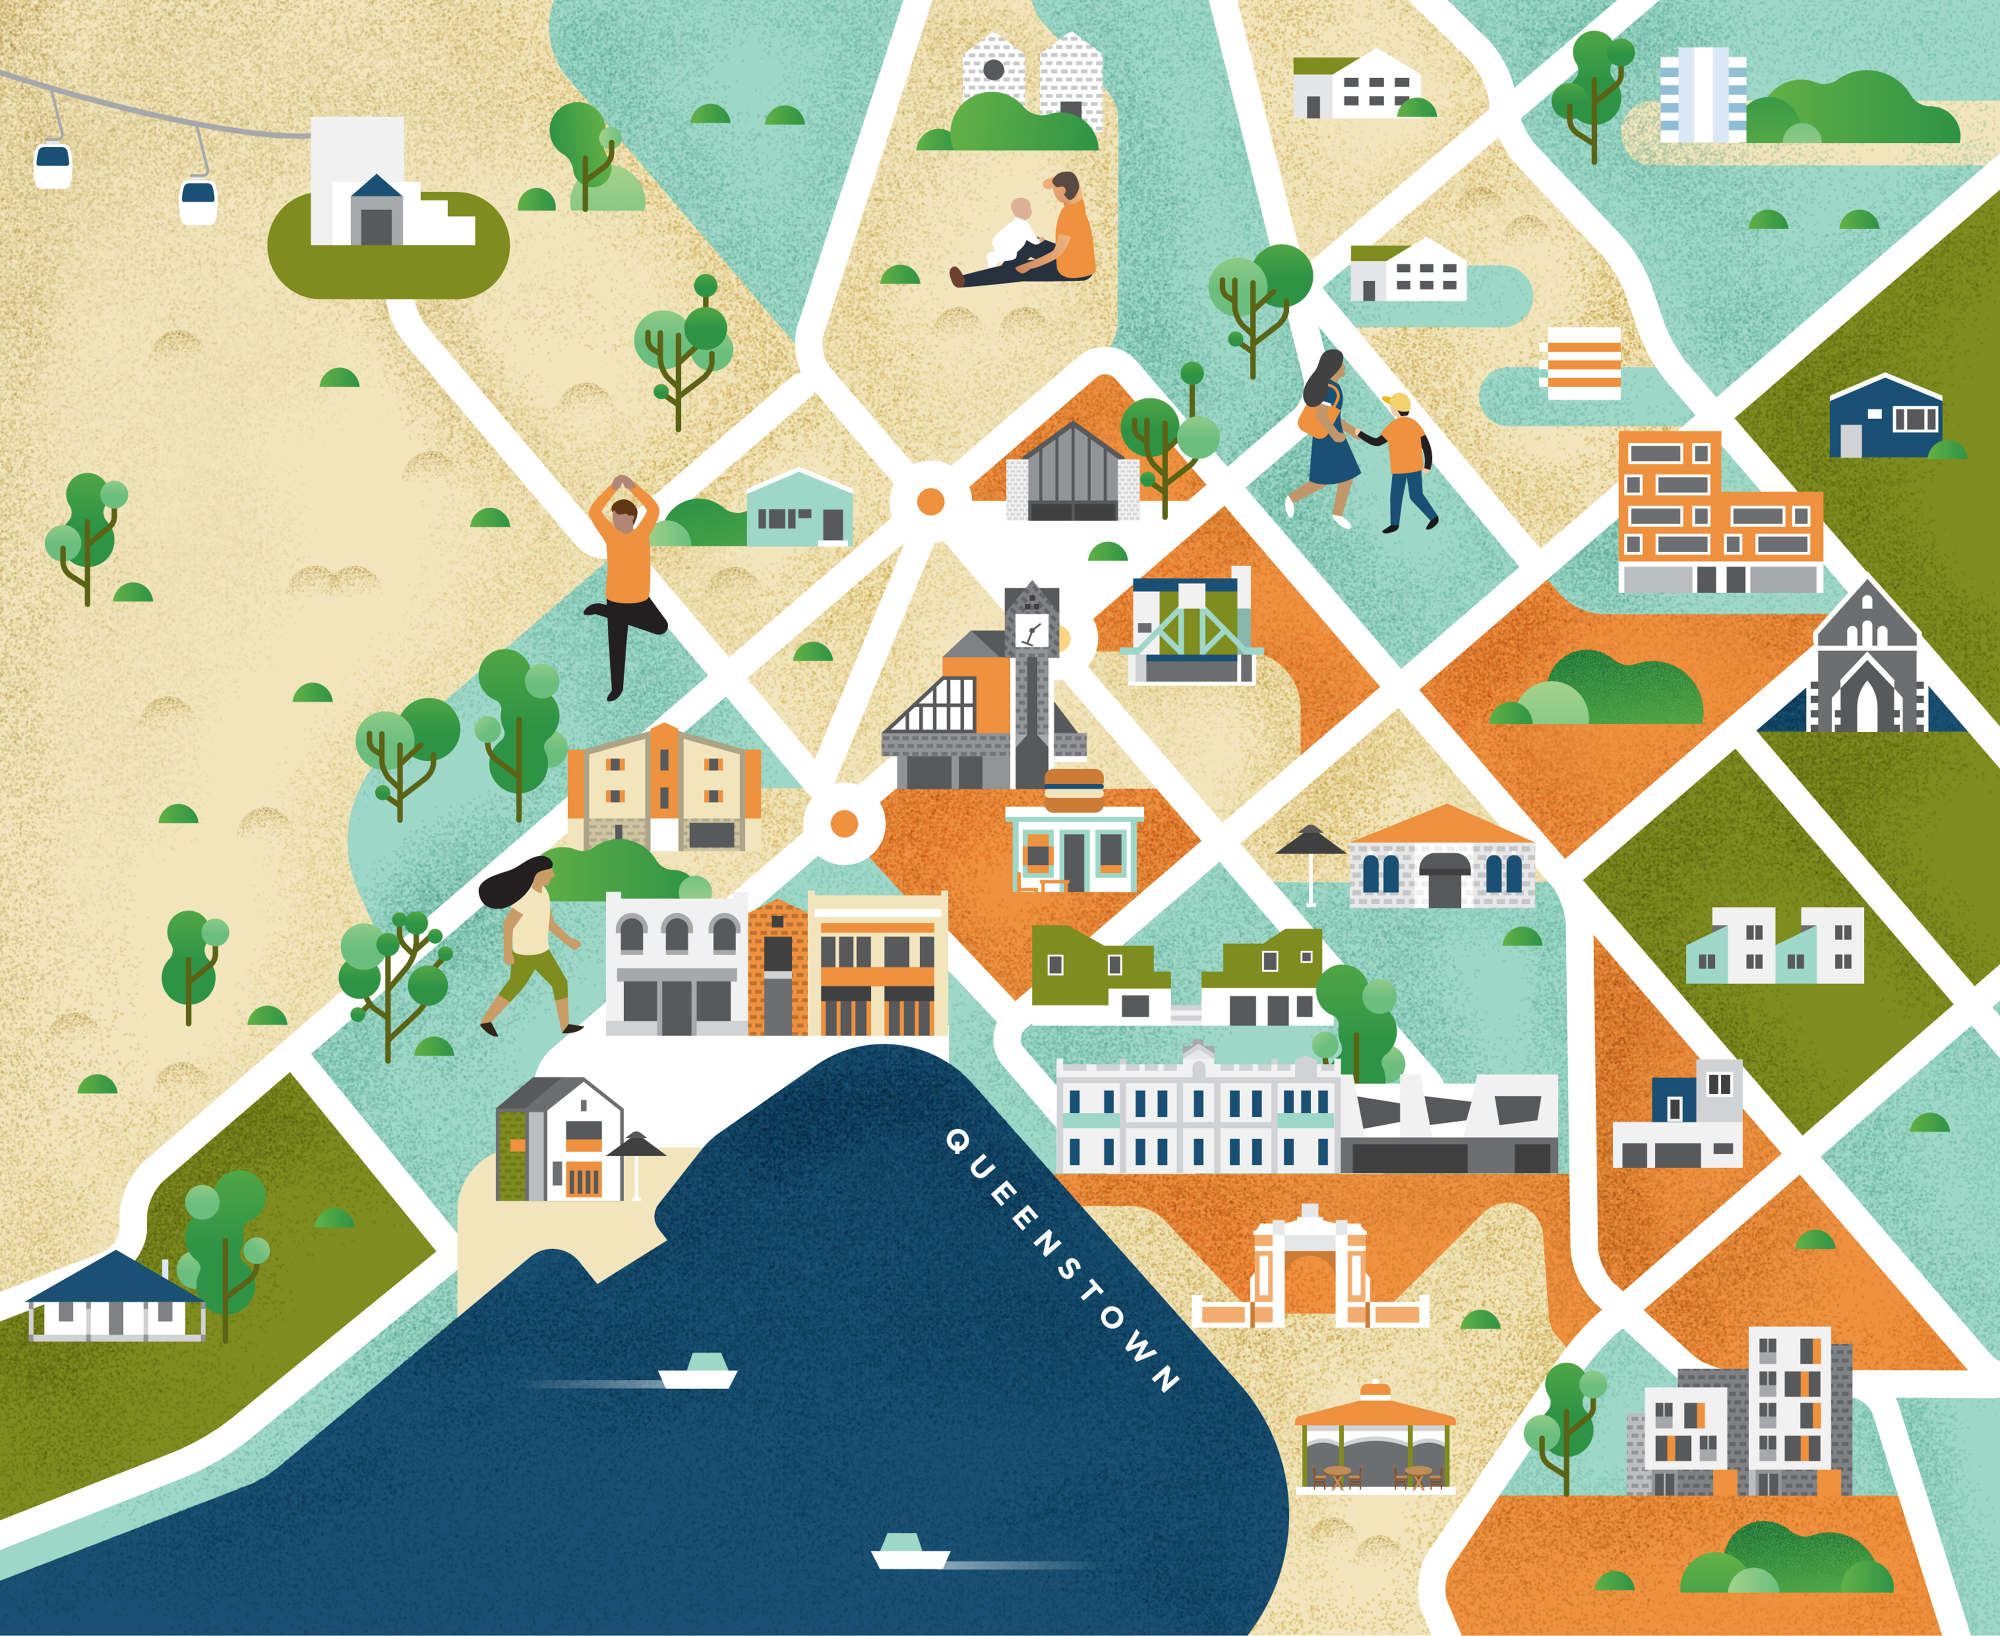 Map Of New Zealand Queenstown.Maps Of New Zealand Jing Zhang Illustration